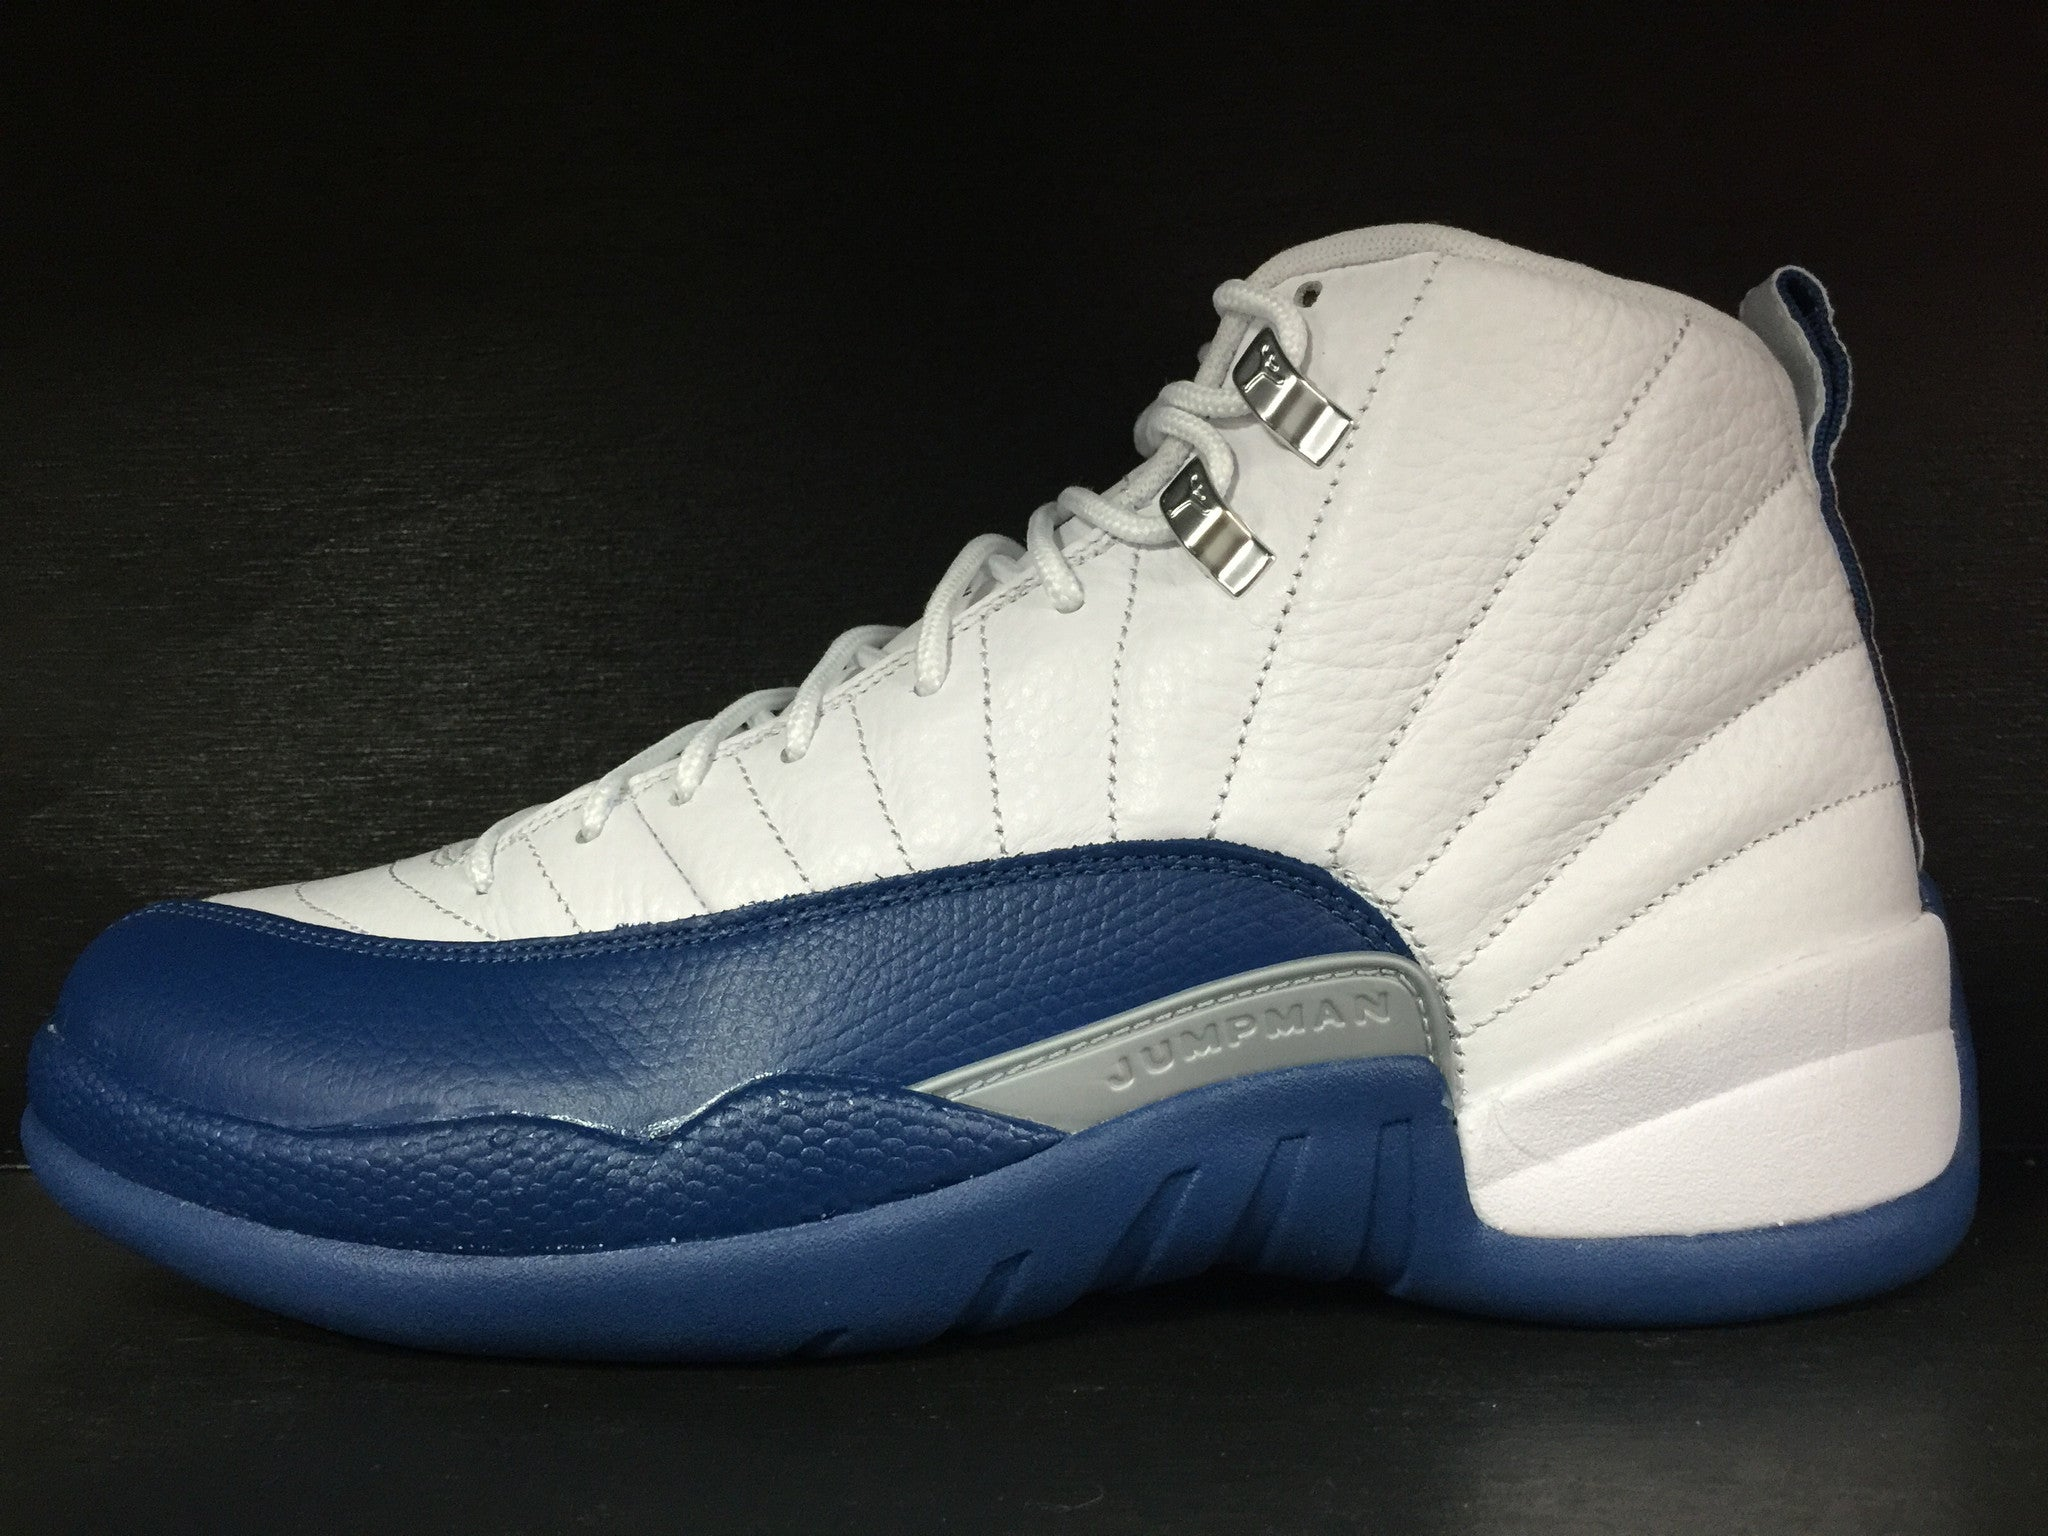 Air Jordan 12 Retro 'French Blue'